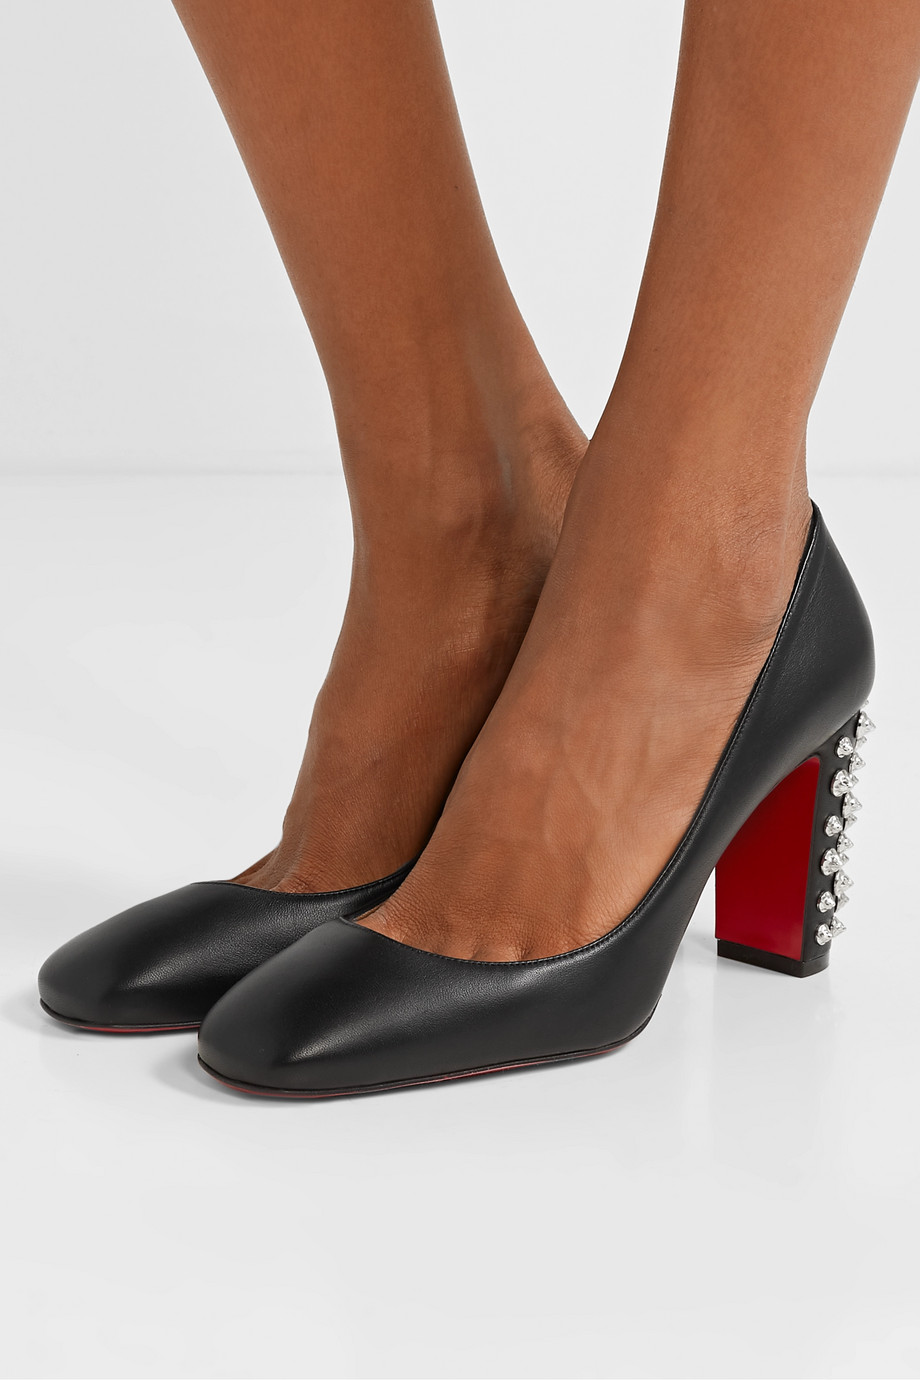 Christian Louboutin Donna 85 studded leather pumps